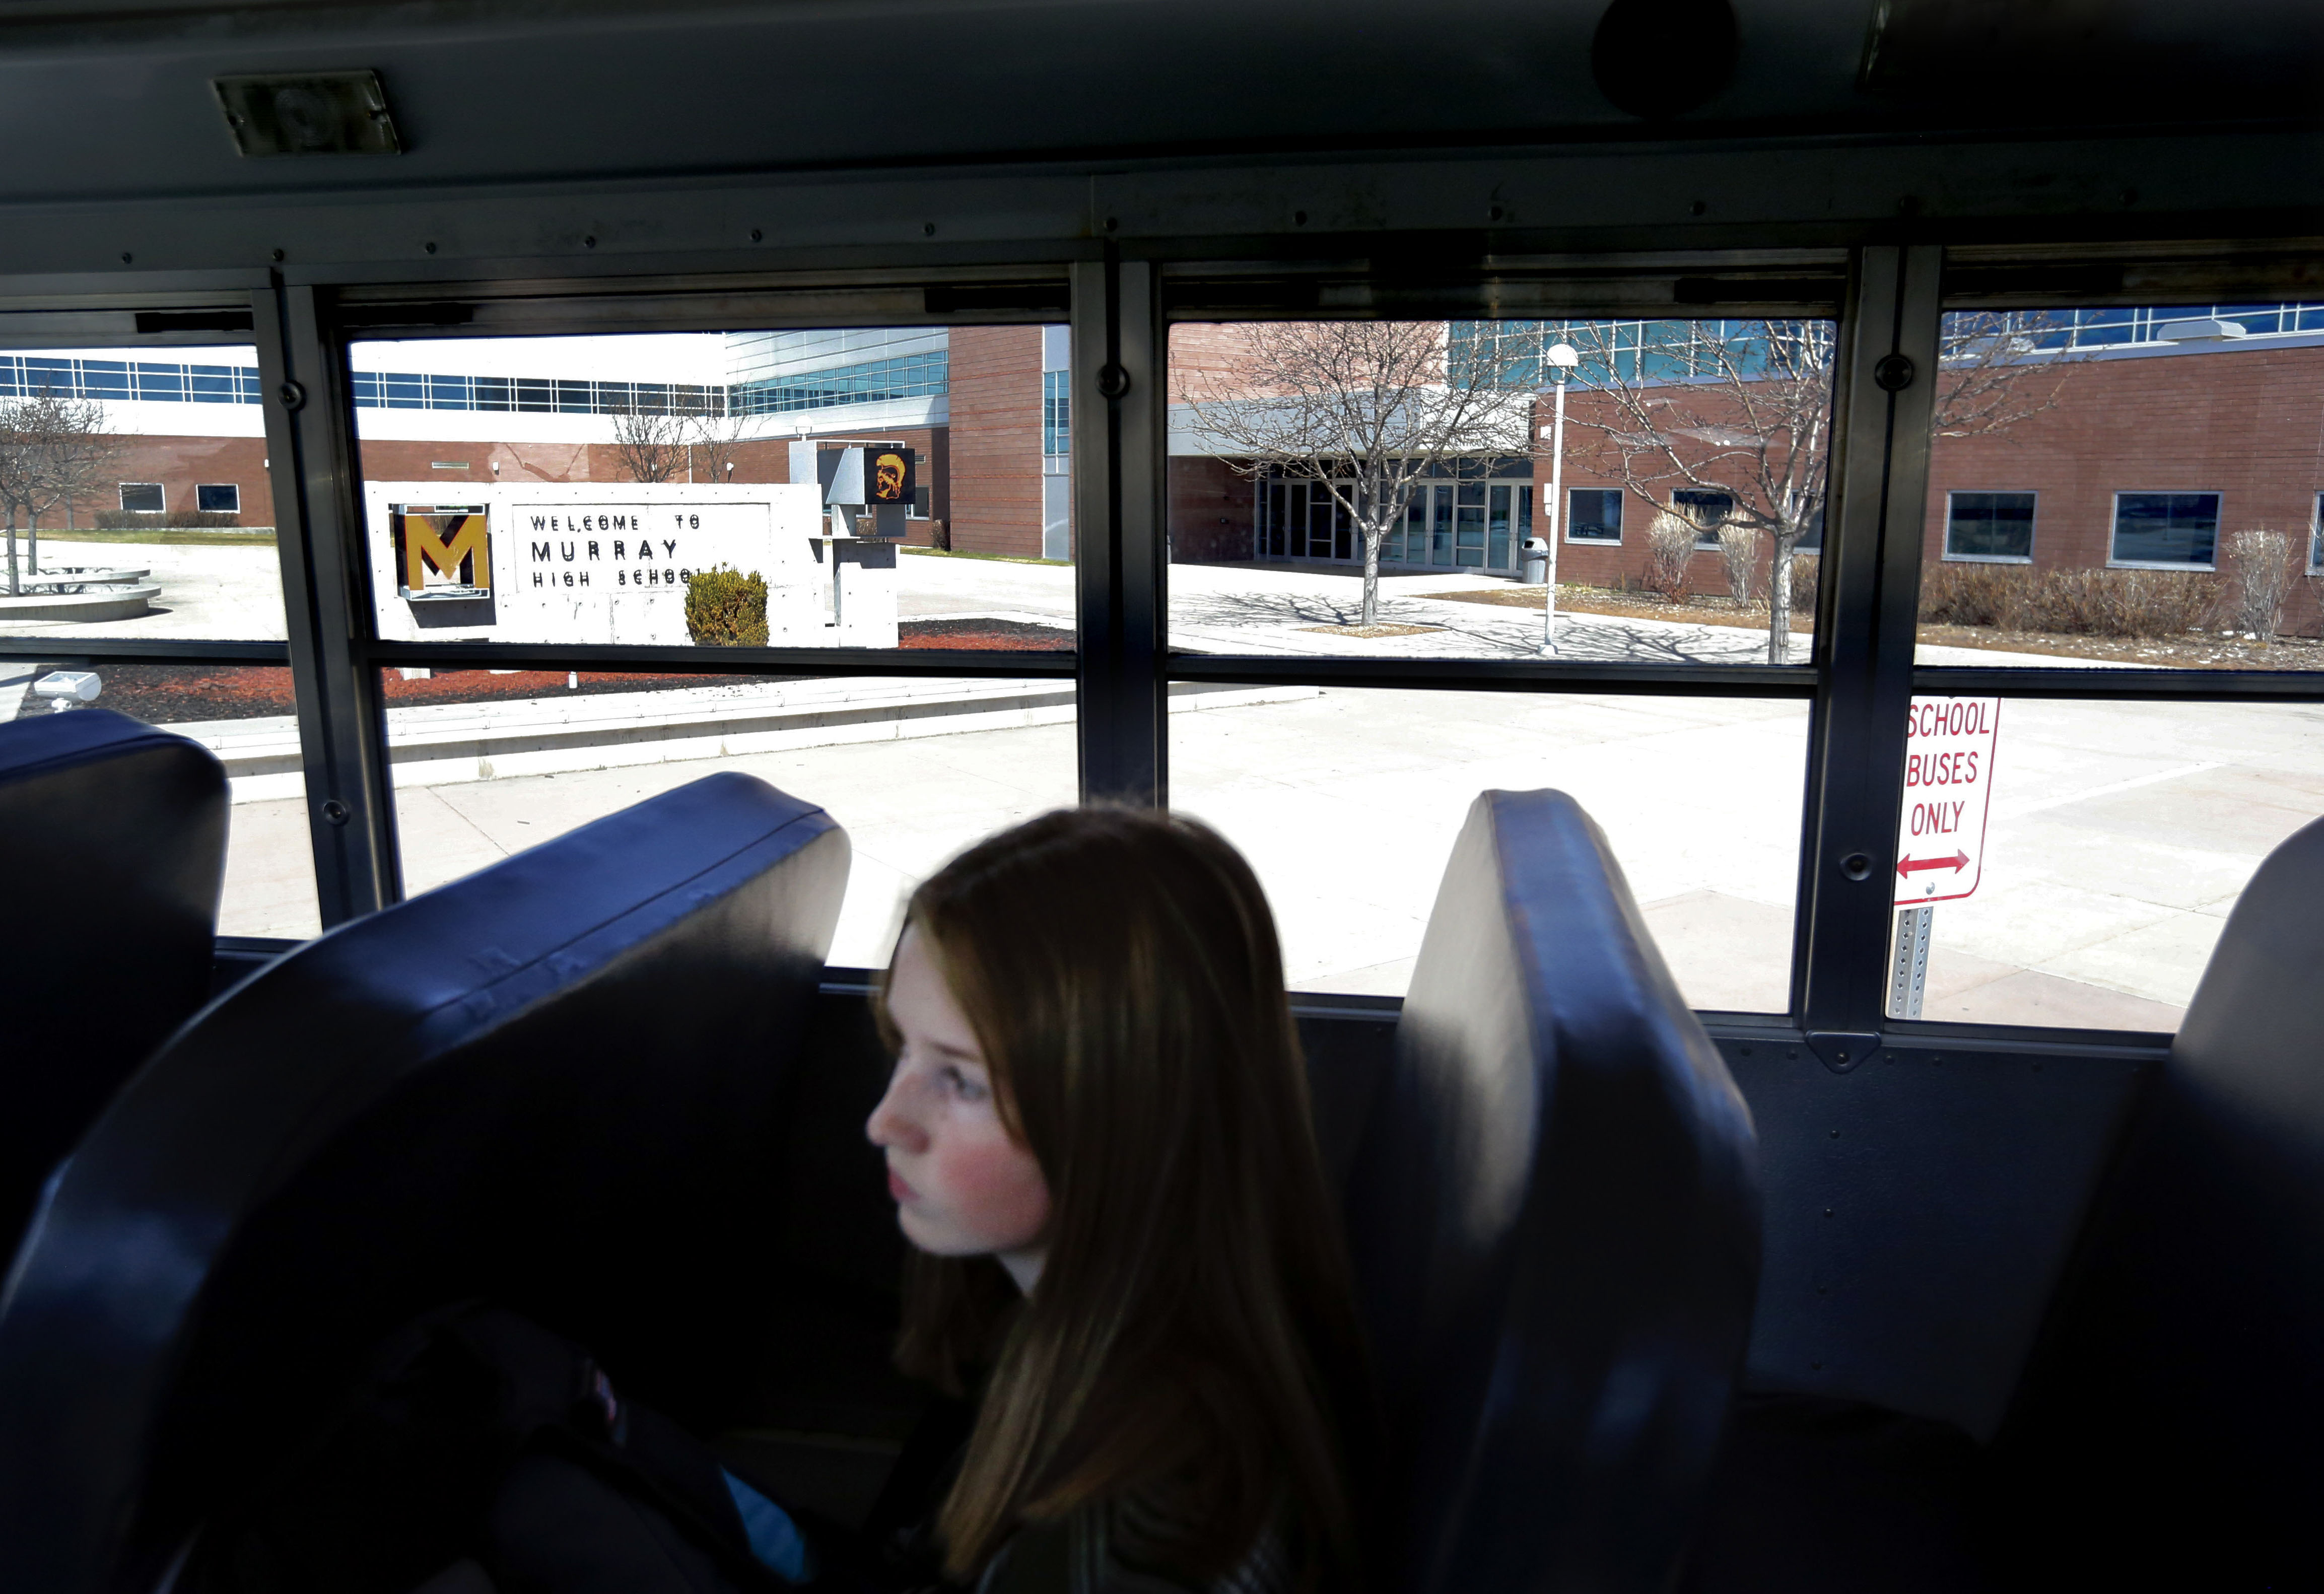 Sophomore Zoe Scott waits for her bus to leave Murray High School on Thursday, March 12, 2020. Murray City School District announced Thursday it is closing its schools until further notice amid spread of the novel coronavirus in Utah. Most students and teachers left school after the announcement was made earlier in the day.